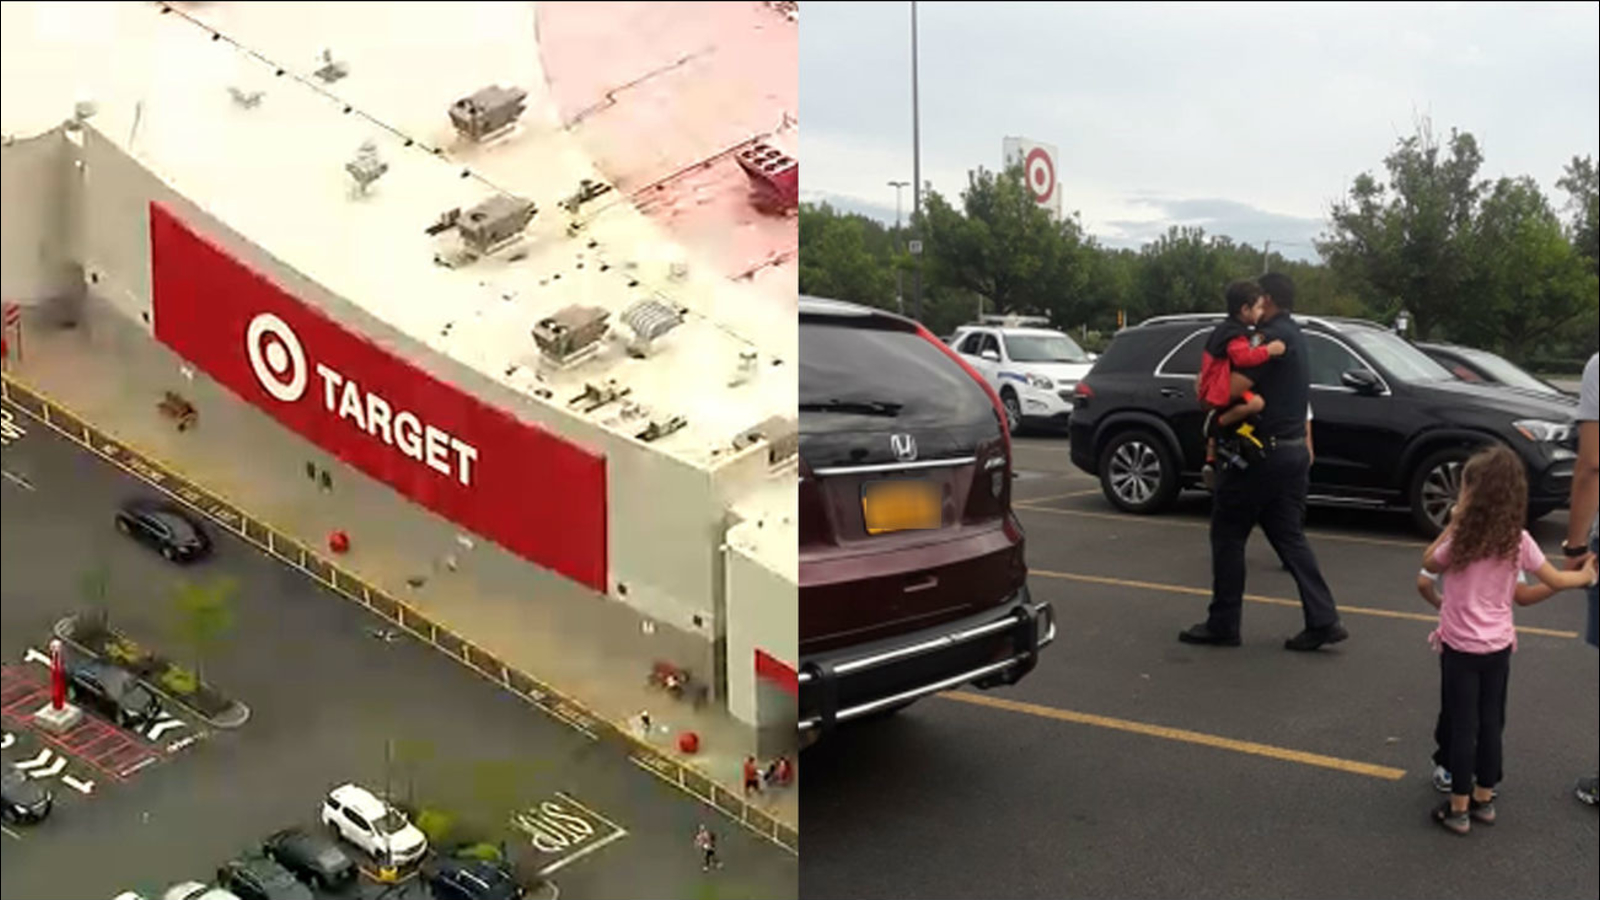 Mom charged after boy found alone, crying in car parked at Target in Queens